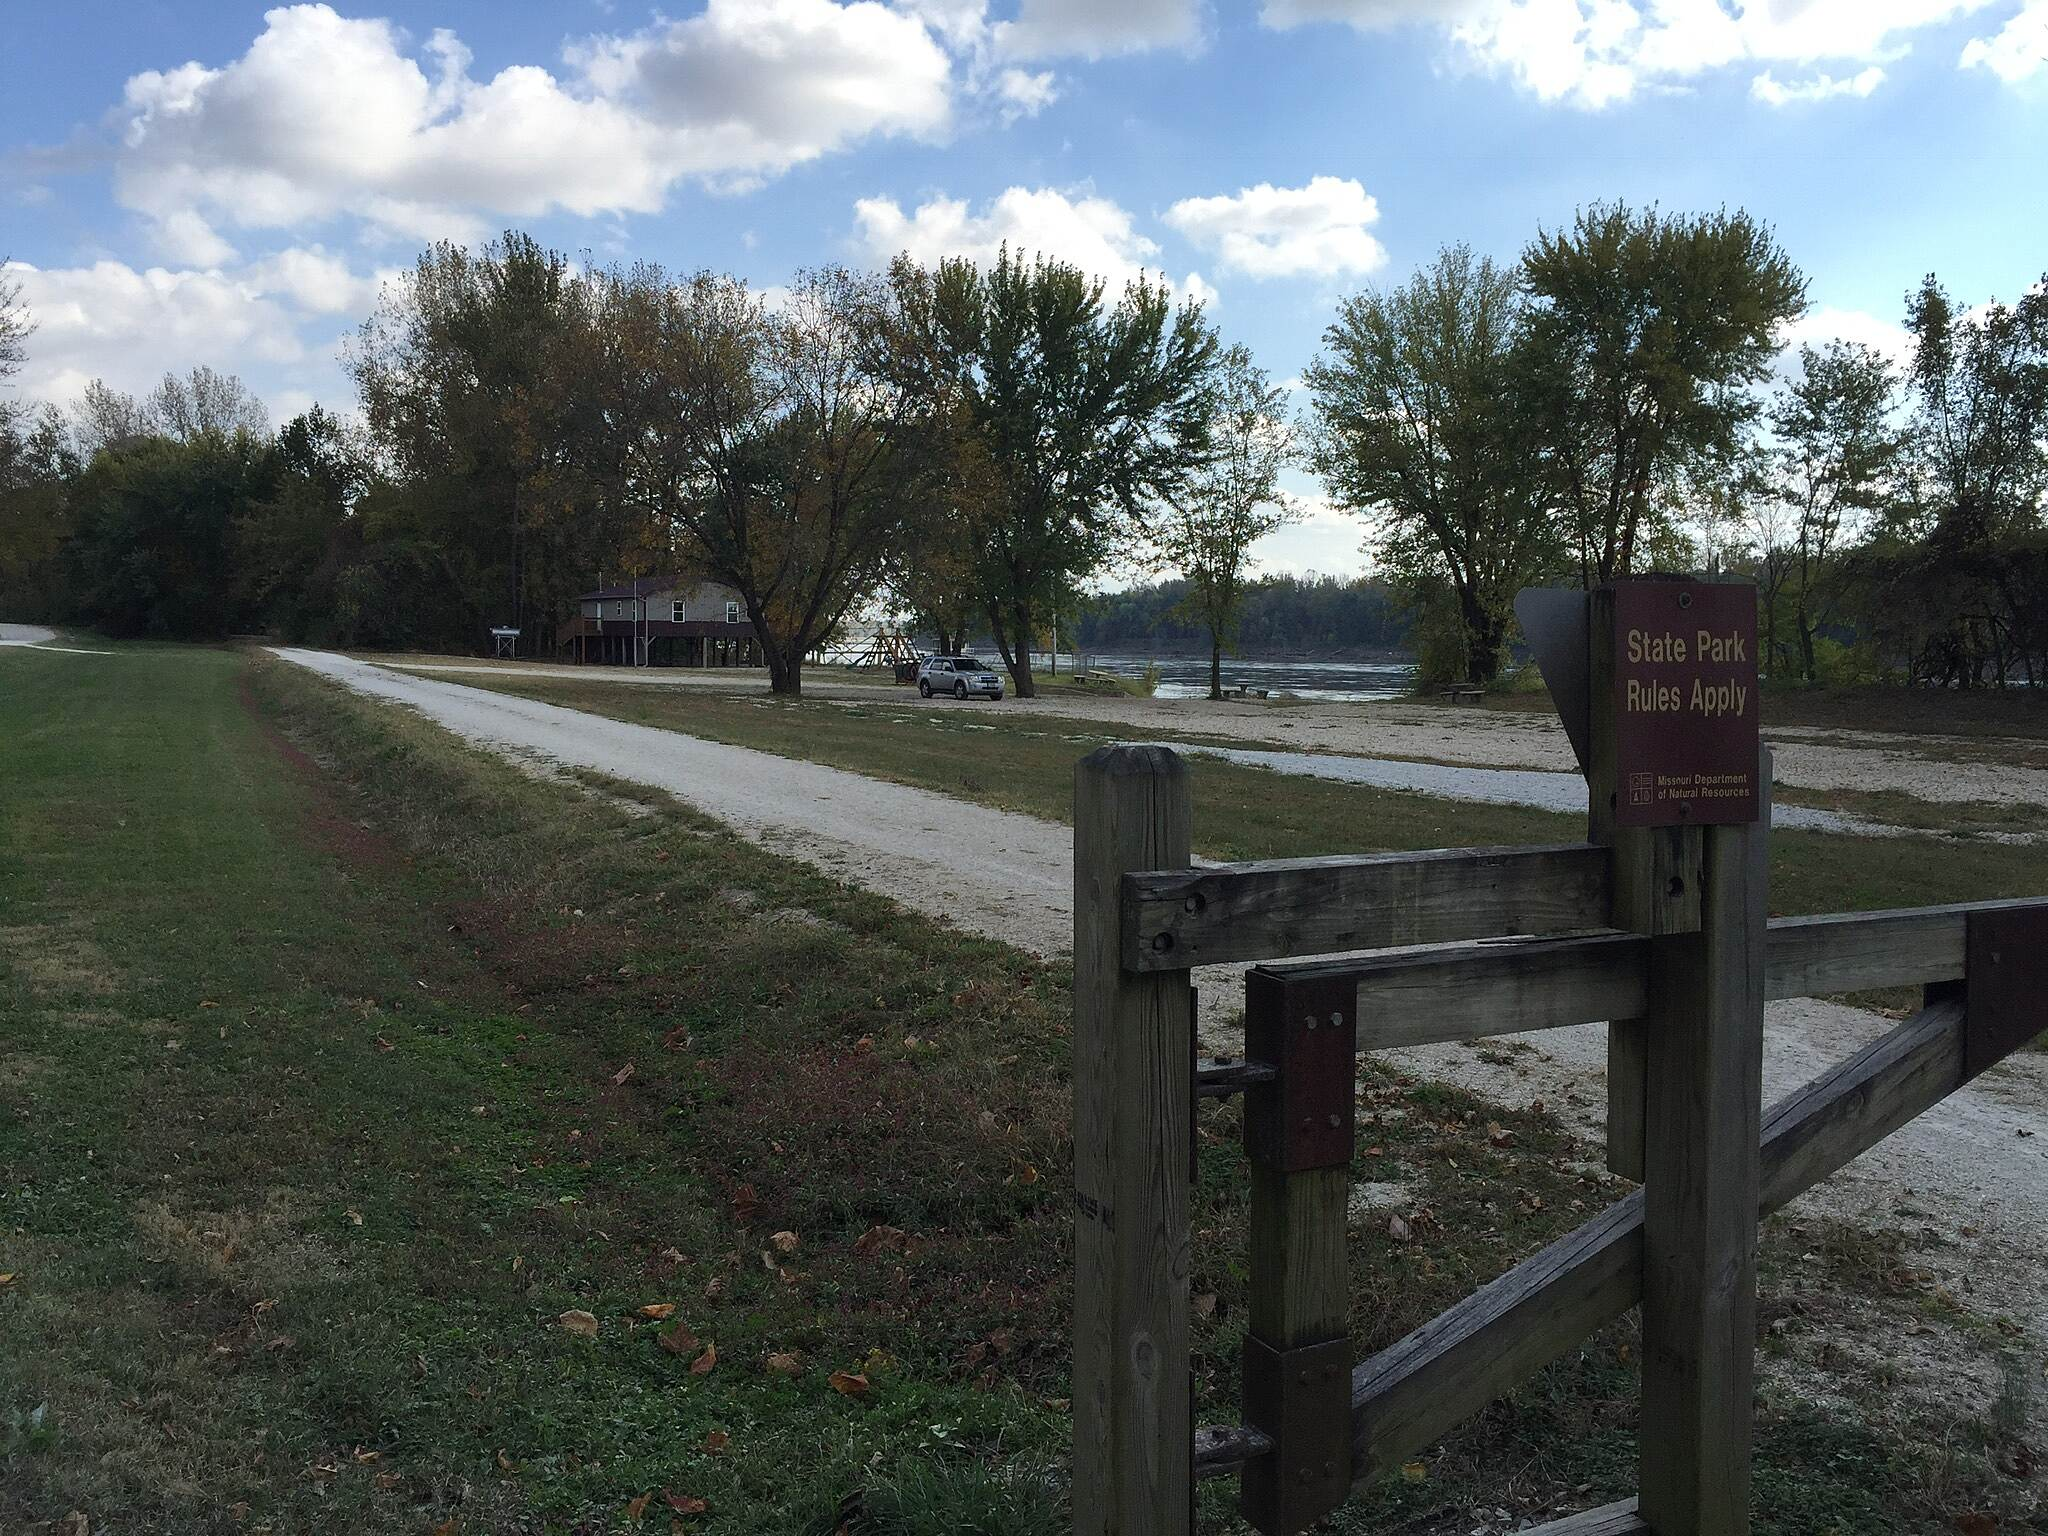 Katy Trail State Park All Along Scenic & Grand Views Trail with the wide Missouri in the background